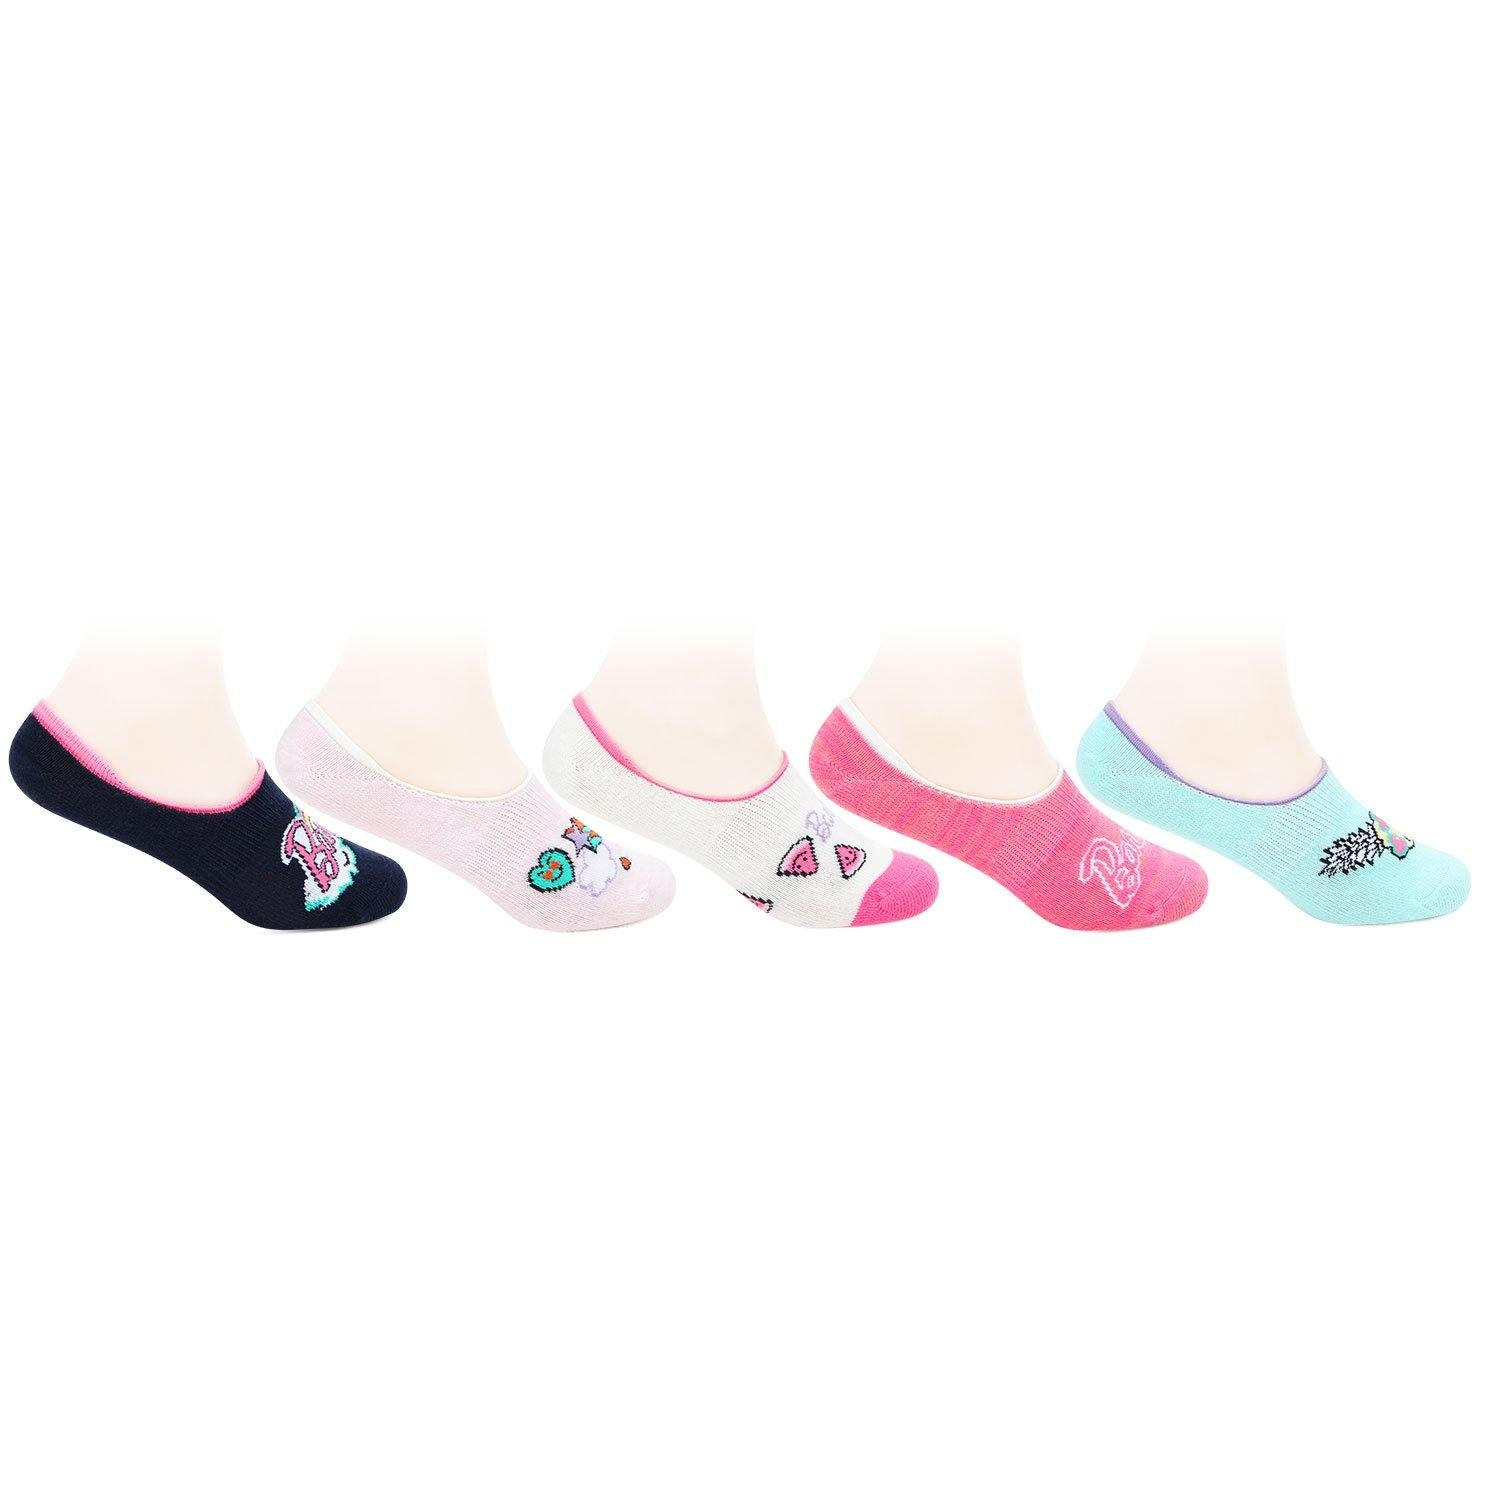 Barbie Cute Prints Fancy Multicoloured Loafer Socks for Kids- Pack of 5